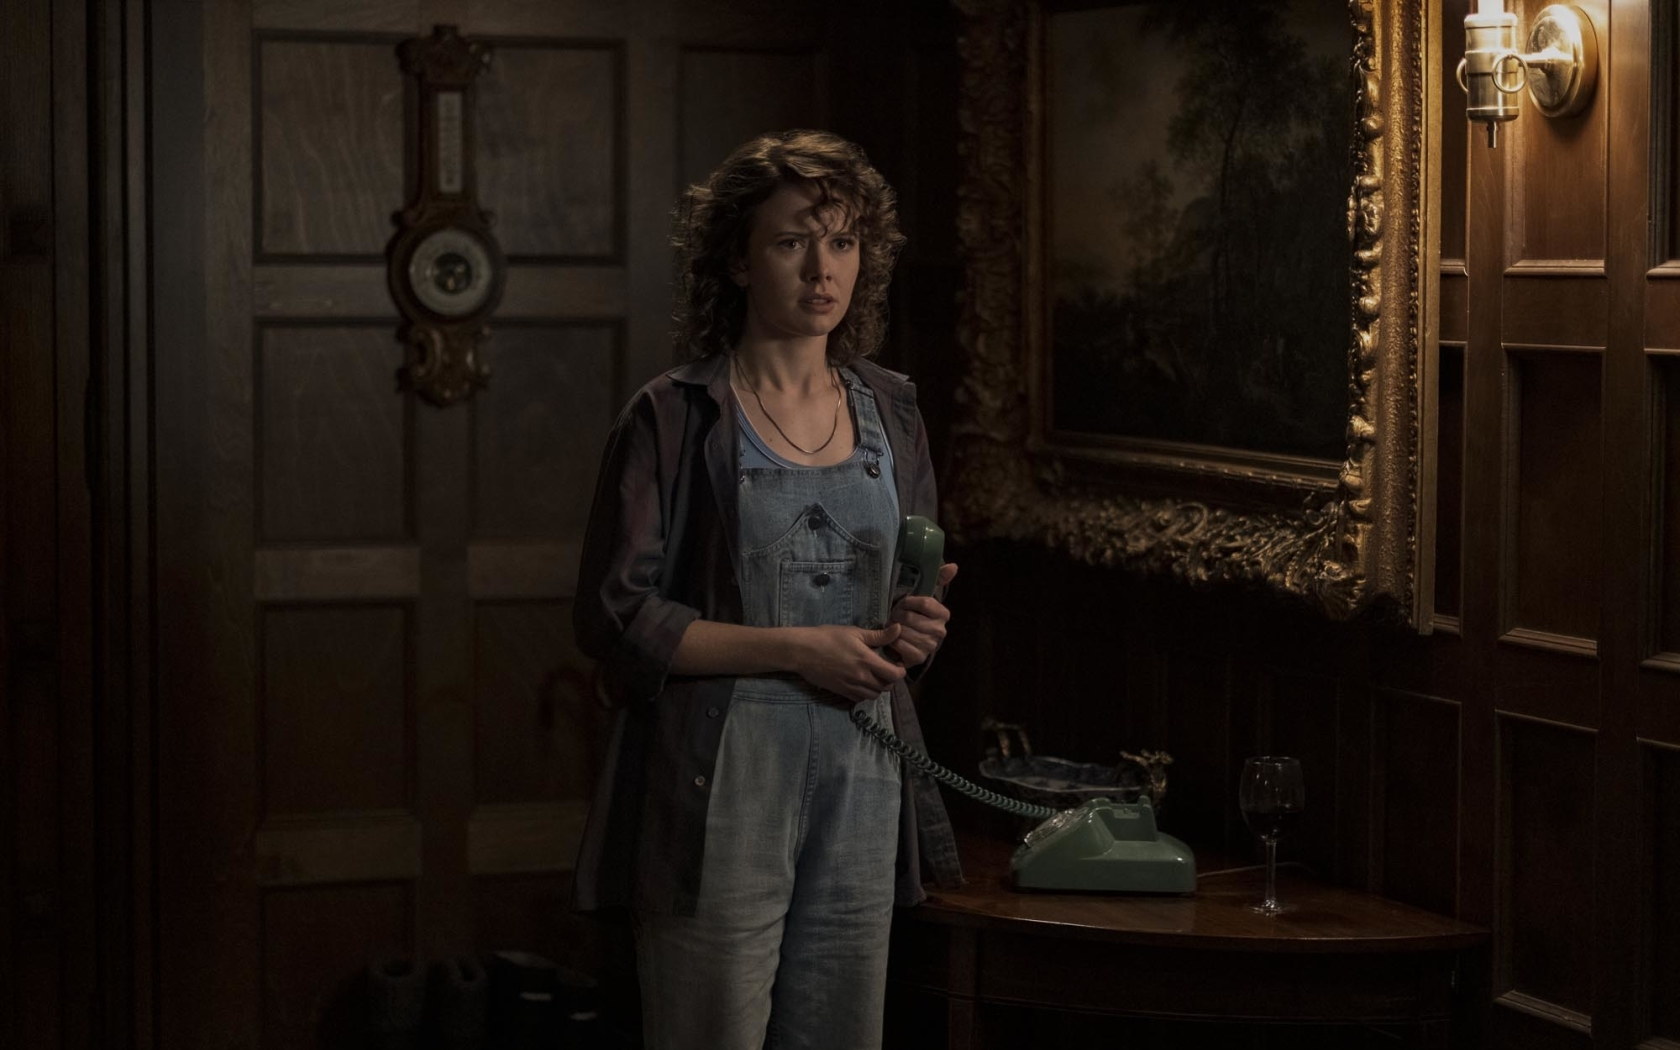 Amelia Eve in The Haunting of Bly Manor Wallpaper in 1680x1050 Resolution